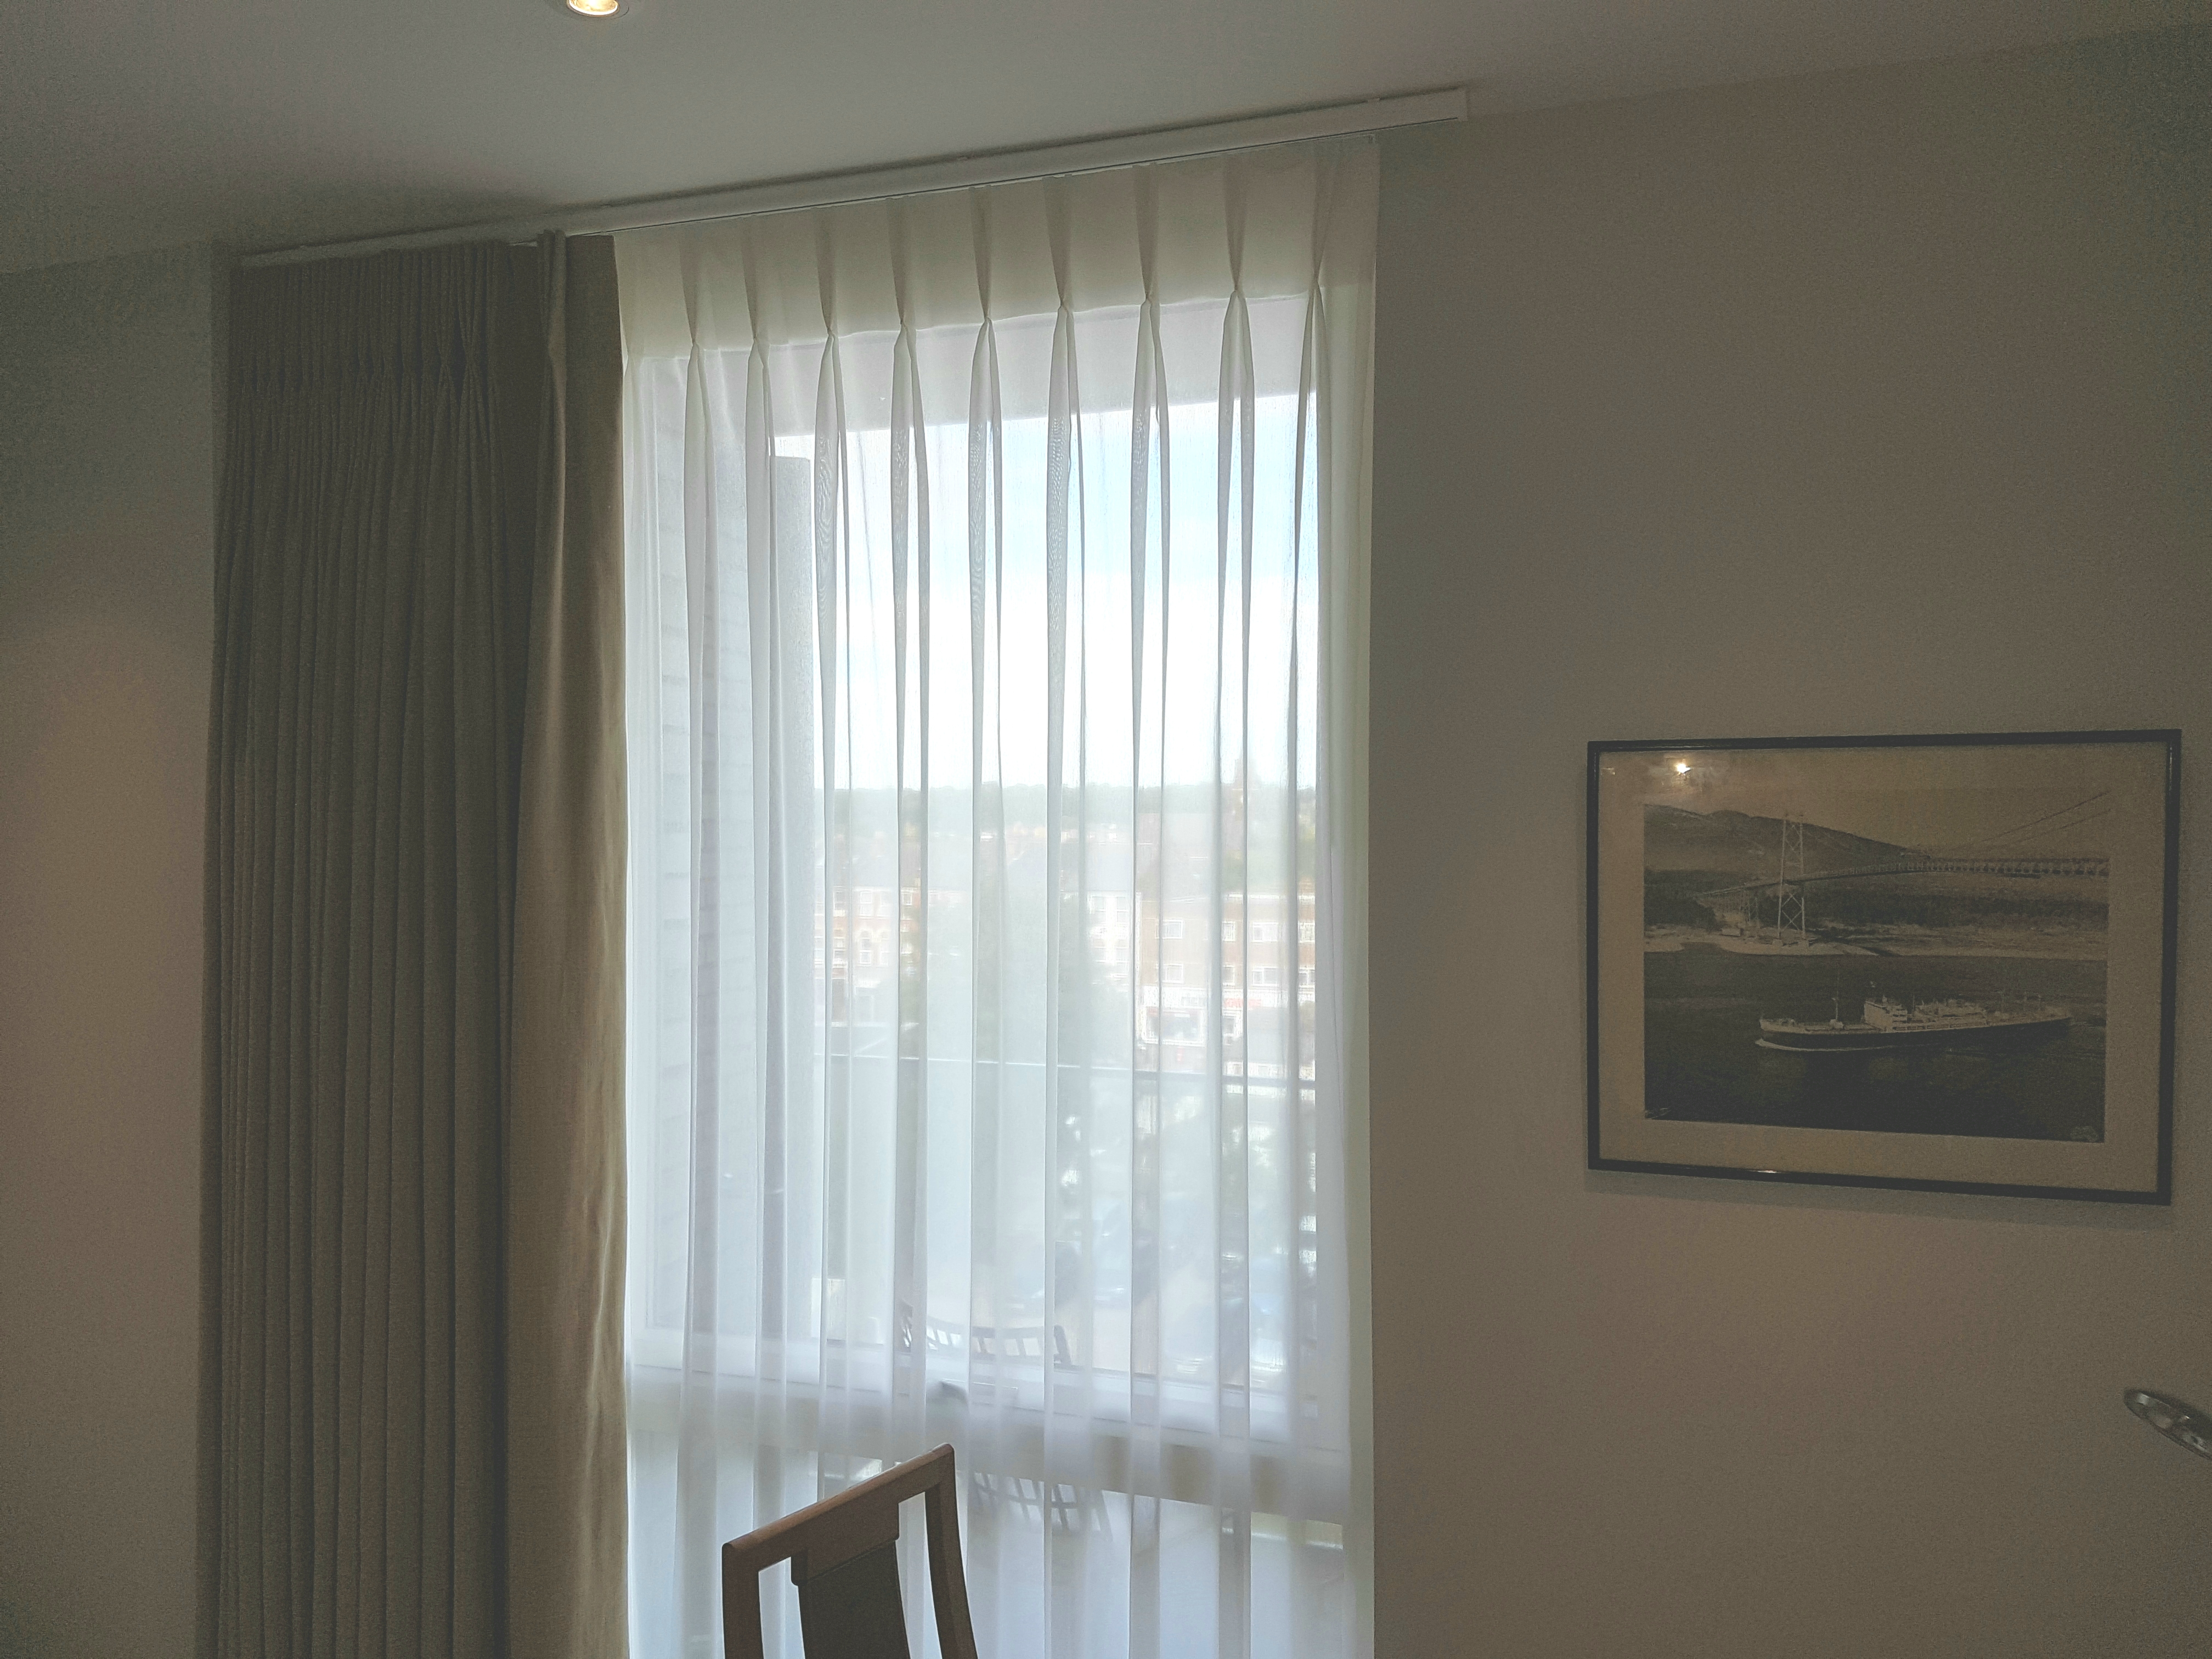 Single double pleat sheer curtain and blackout curtain installed to a curtain track and a pole